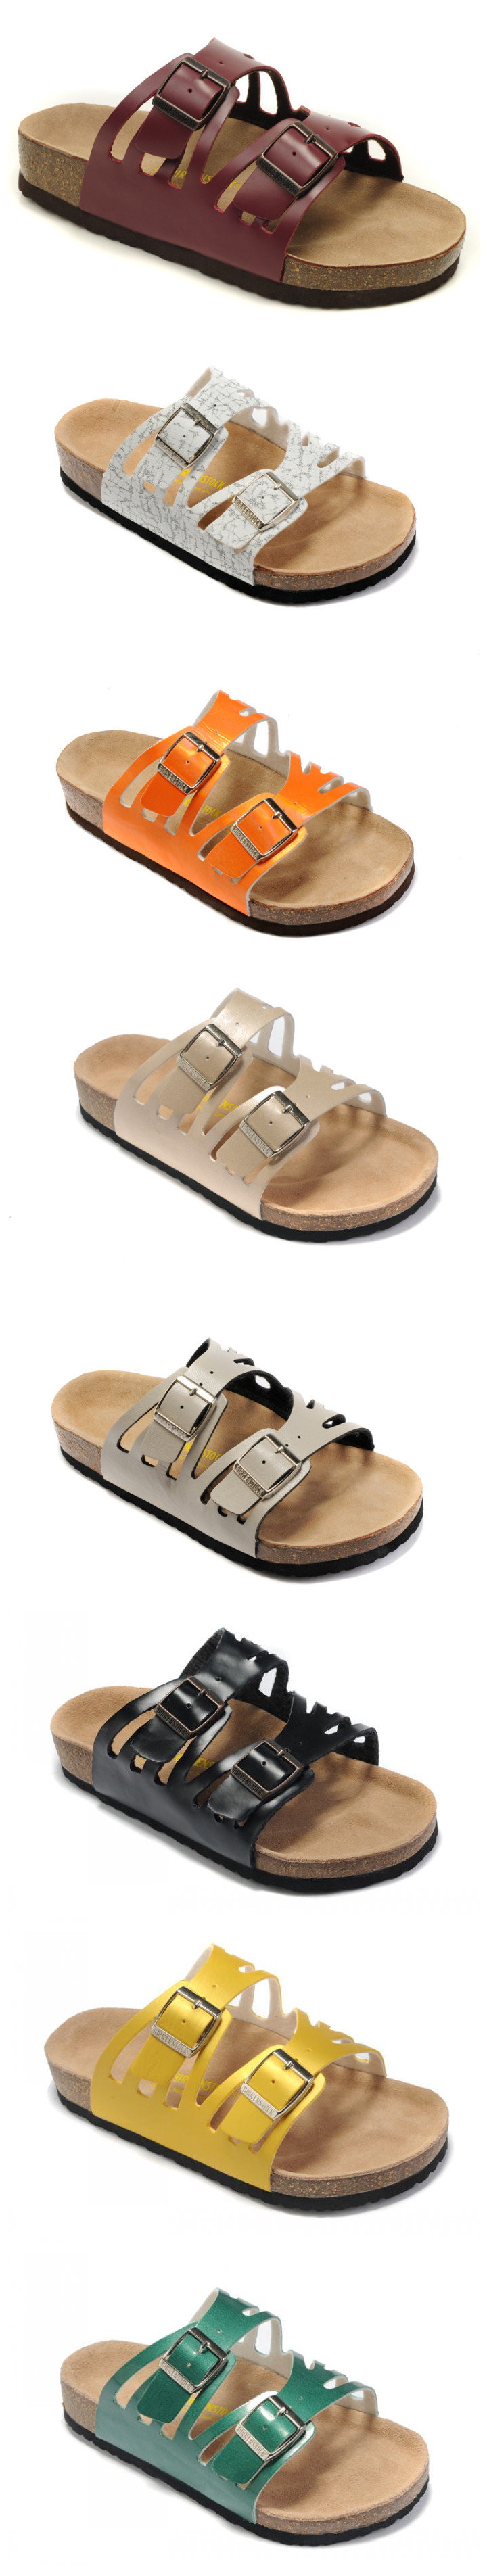 6c0748d3a0b Birkenstock sandals sale  74% off!Lots of sizes.Must remember this ...